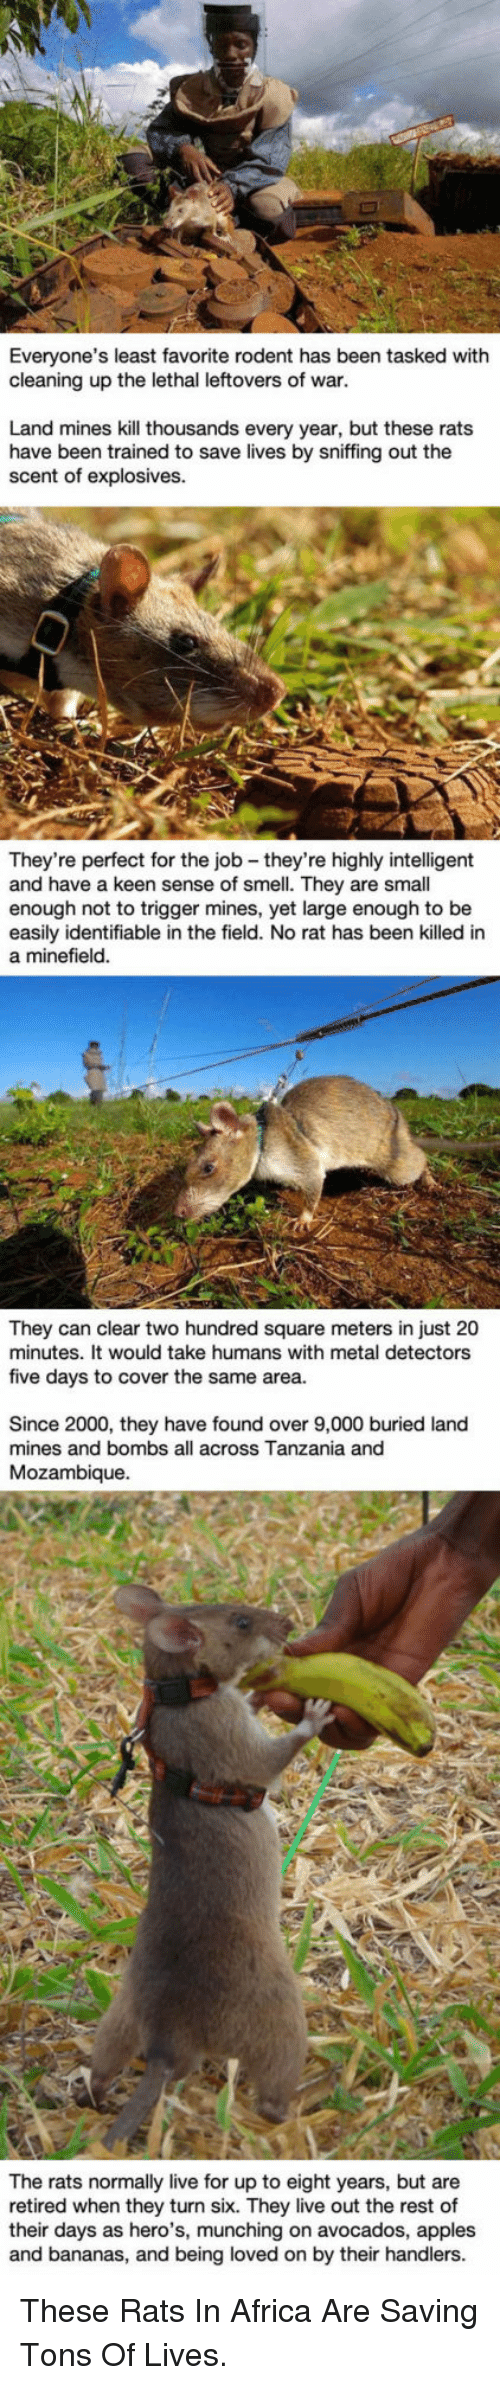 Africa, Smell, and Keen: Everyone's least favorite rodent has been tasked with  cleaning up the lethal leftovers of war.  Land mines kill thousands every year, but these rats  have been trained to save lives by sniffing out the  scent of explosives.  They're perfect for the job - they're highly intelligent  and have a keen sense of smell. They are small  enough not to trigger mines, yet large enough to be  easily identifiable in the field. No rat has been killed in  a minefield  They can clear two hundred square meters in just 20  minutes. It would take humans with metal detectors  five days to cover the same area.  Since 2000, they have found over 9,000 buried land  mines and bombs all across Tanzania and  Mozambique.  their days an they turn six n to eight  and bananas, and being loved on by their handlers  The rats normally live for up to eight years, but are  retired when they turn six. They live out the rest of  their days as hero's, munching on avocados, apples  retired when hero',mon by their  rest of <p>These Rats In Africa Are Saving Tons Of Lives.</p>